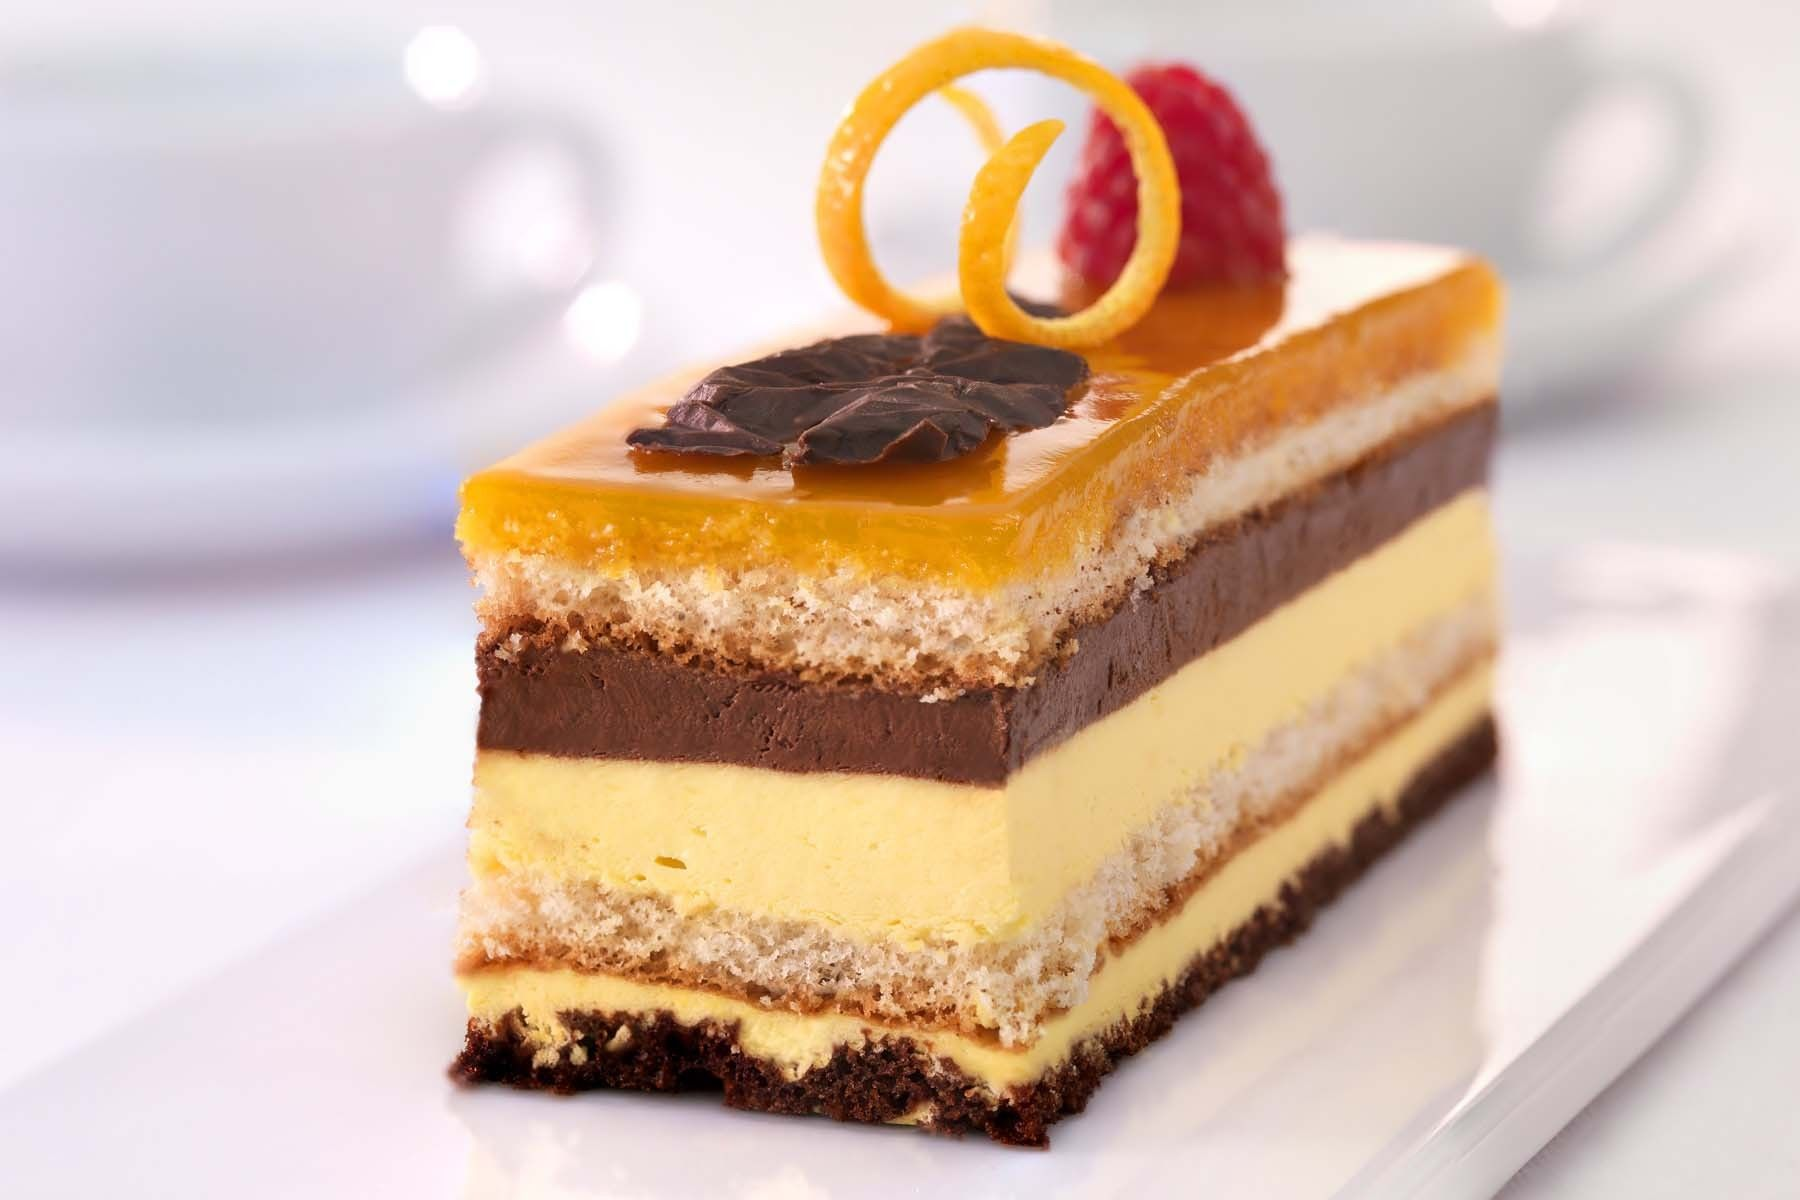 Chocolate & Orange Dessert.